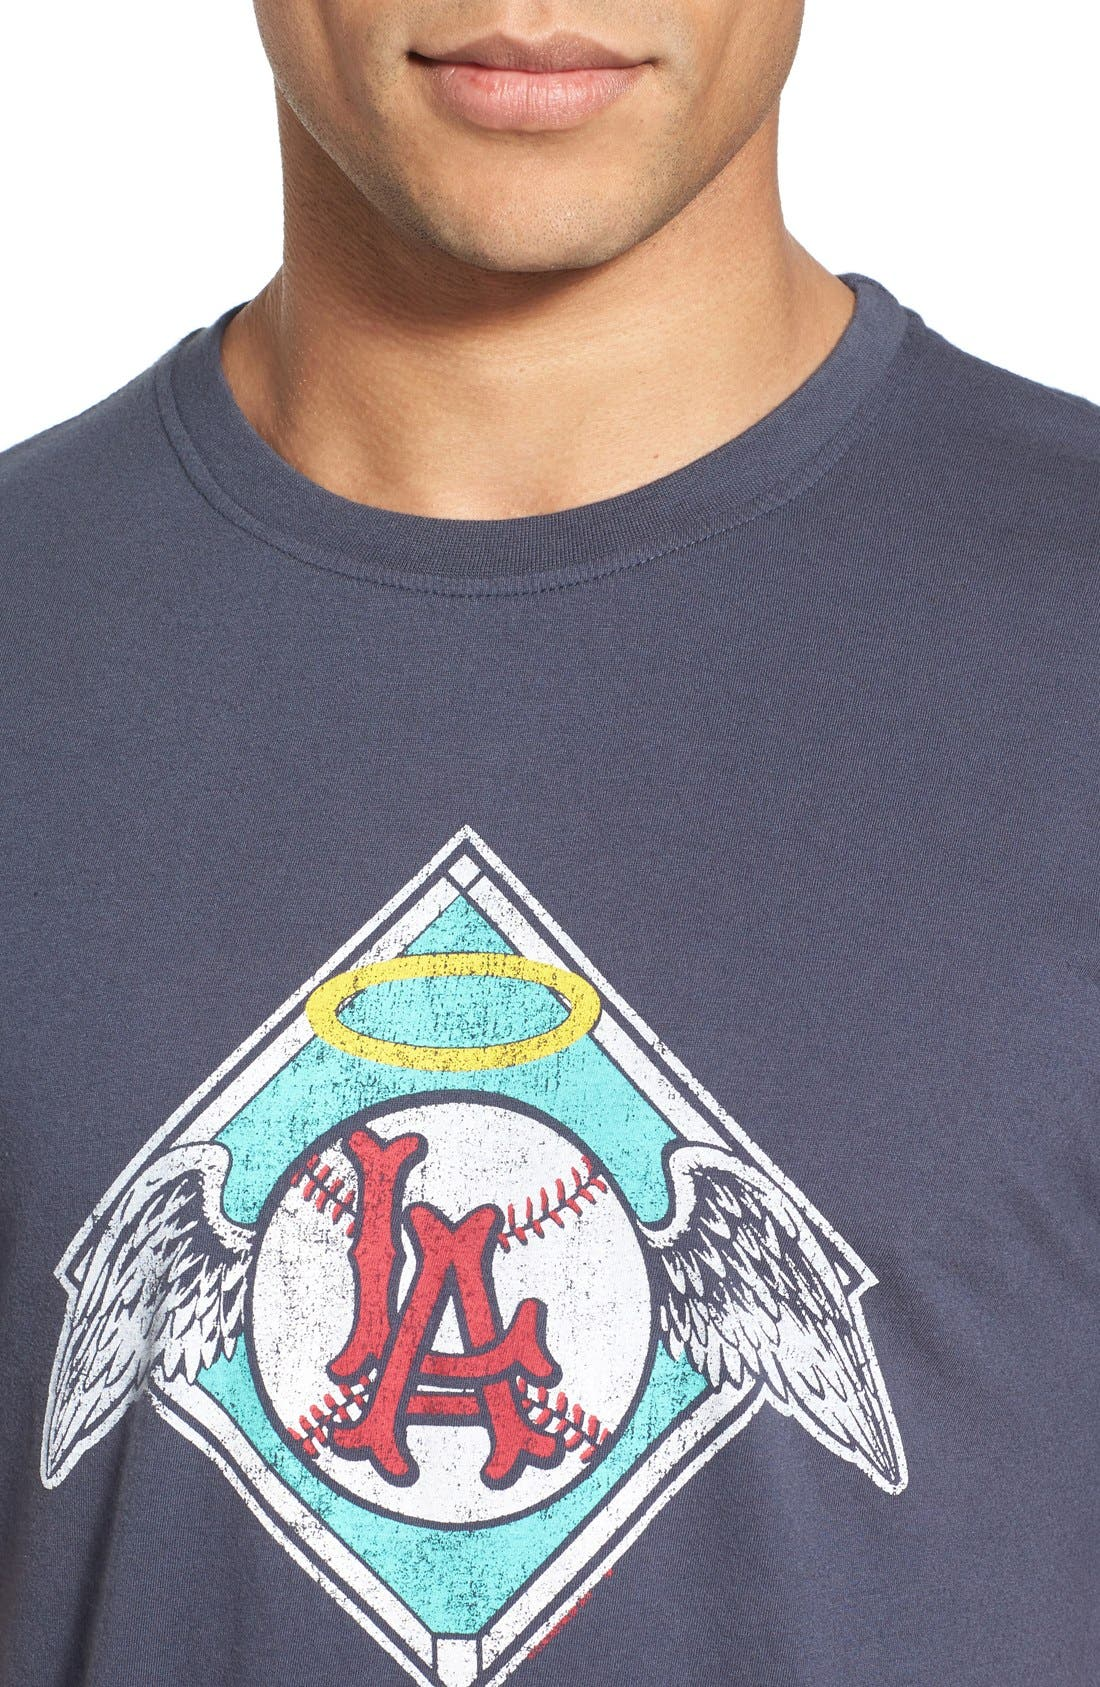 'Los Angeles Angels - Brass Tacks' Trim Fit T-Shirt,                             Alternate thumbnail 4, color,                             Navy